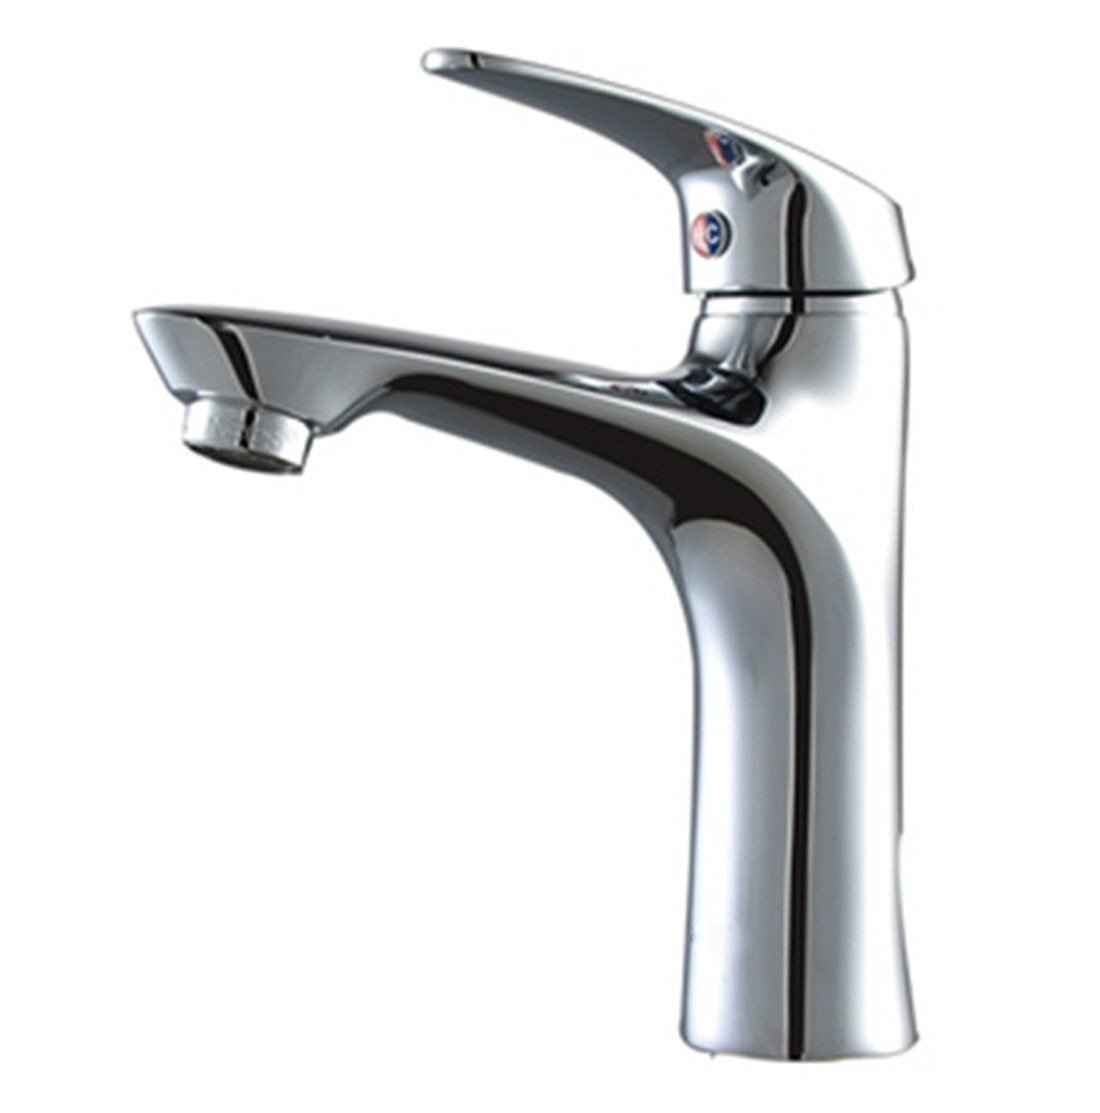 MDRW-Water faucet, basin faucet open up